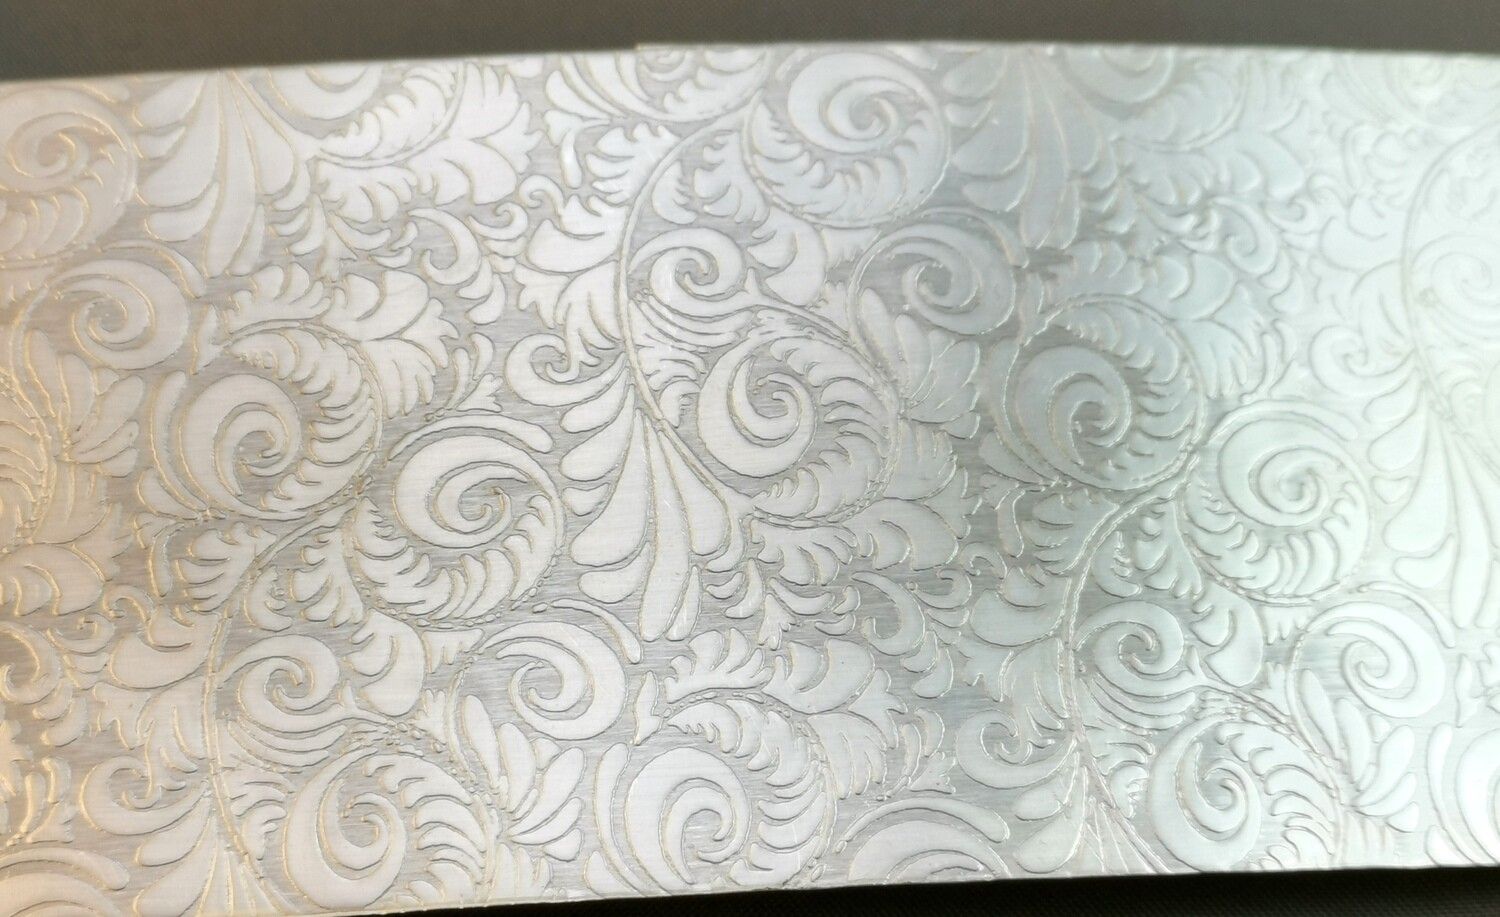 "Tooled Leather Patterned Textured Sterling Silver Sheet Metal 6"" x 2"""